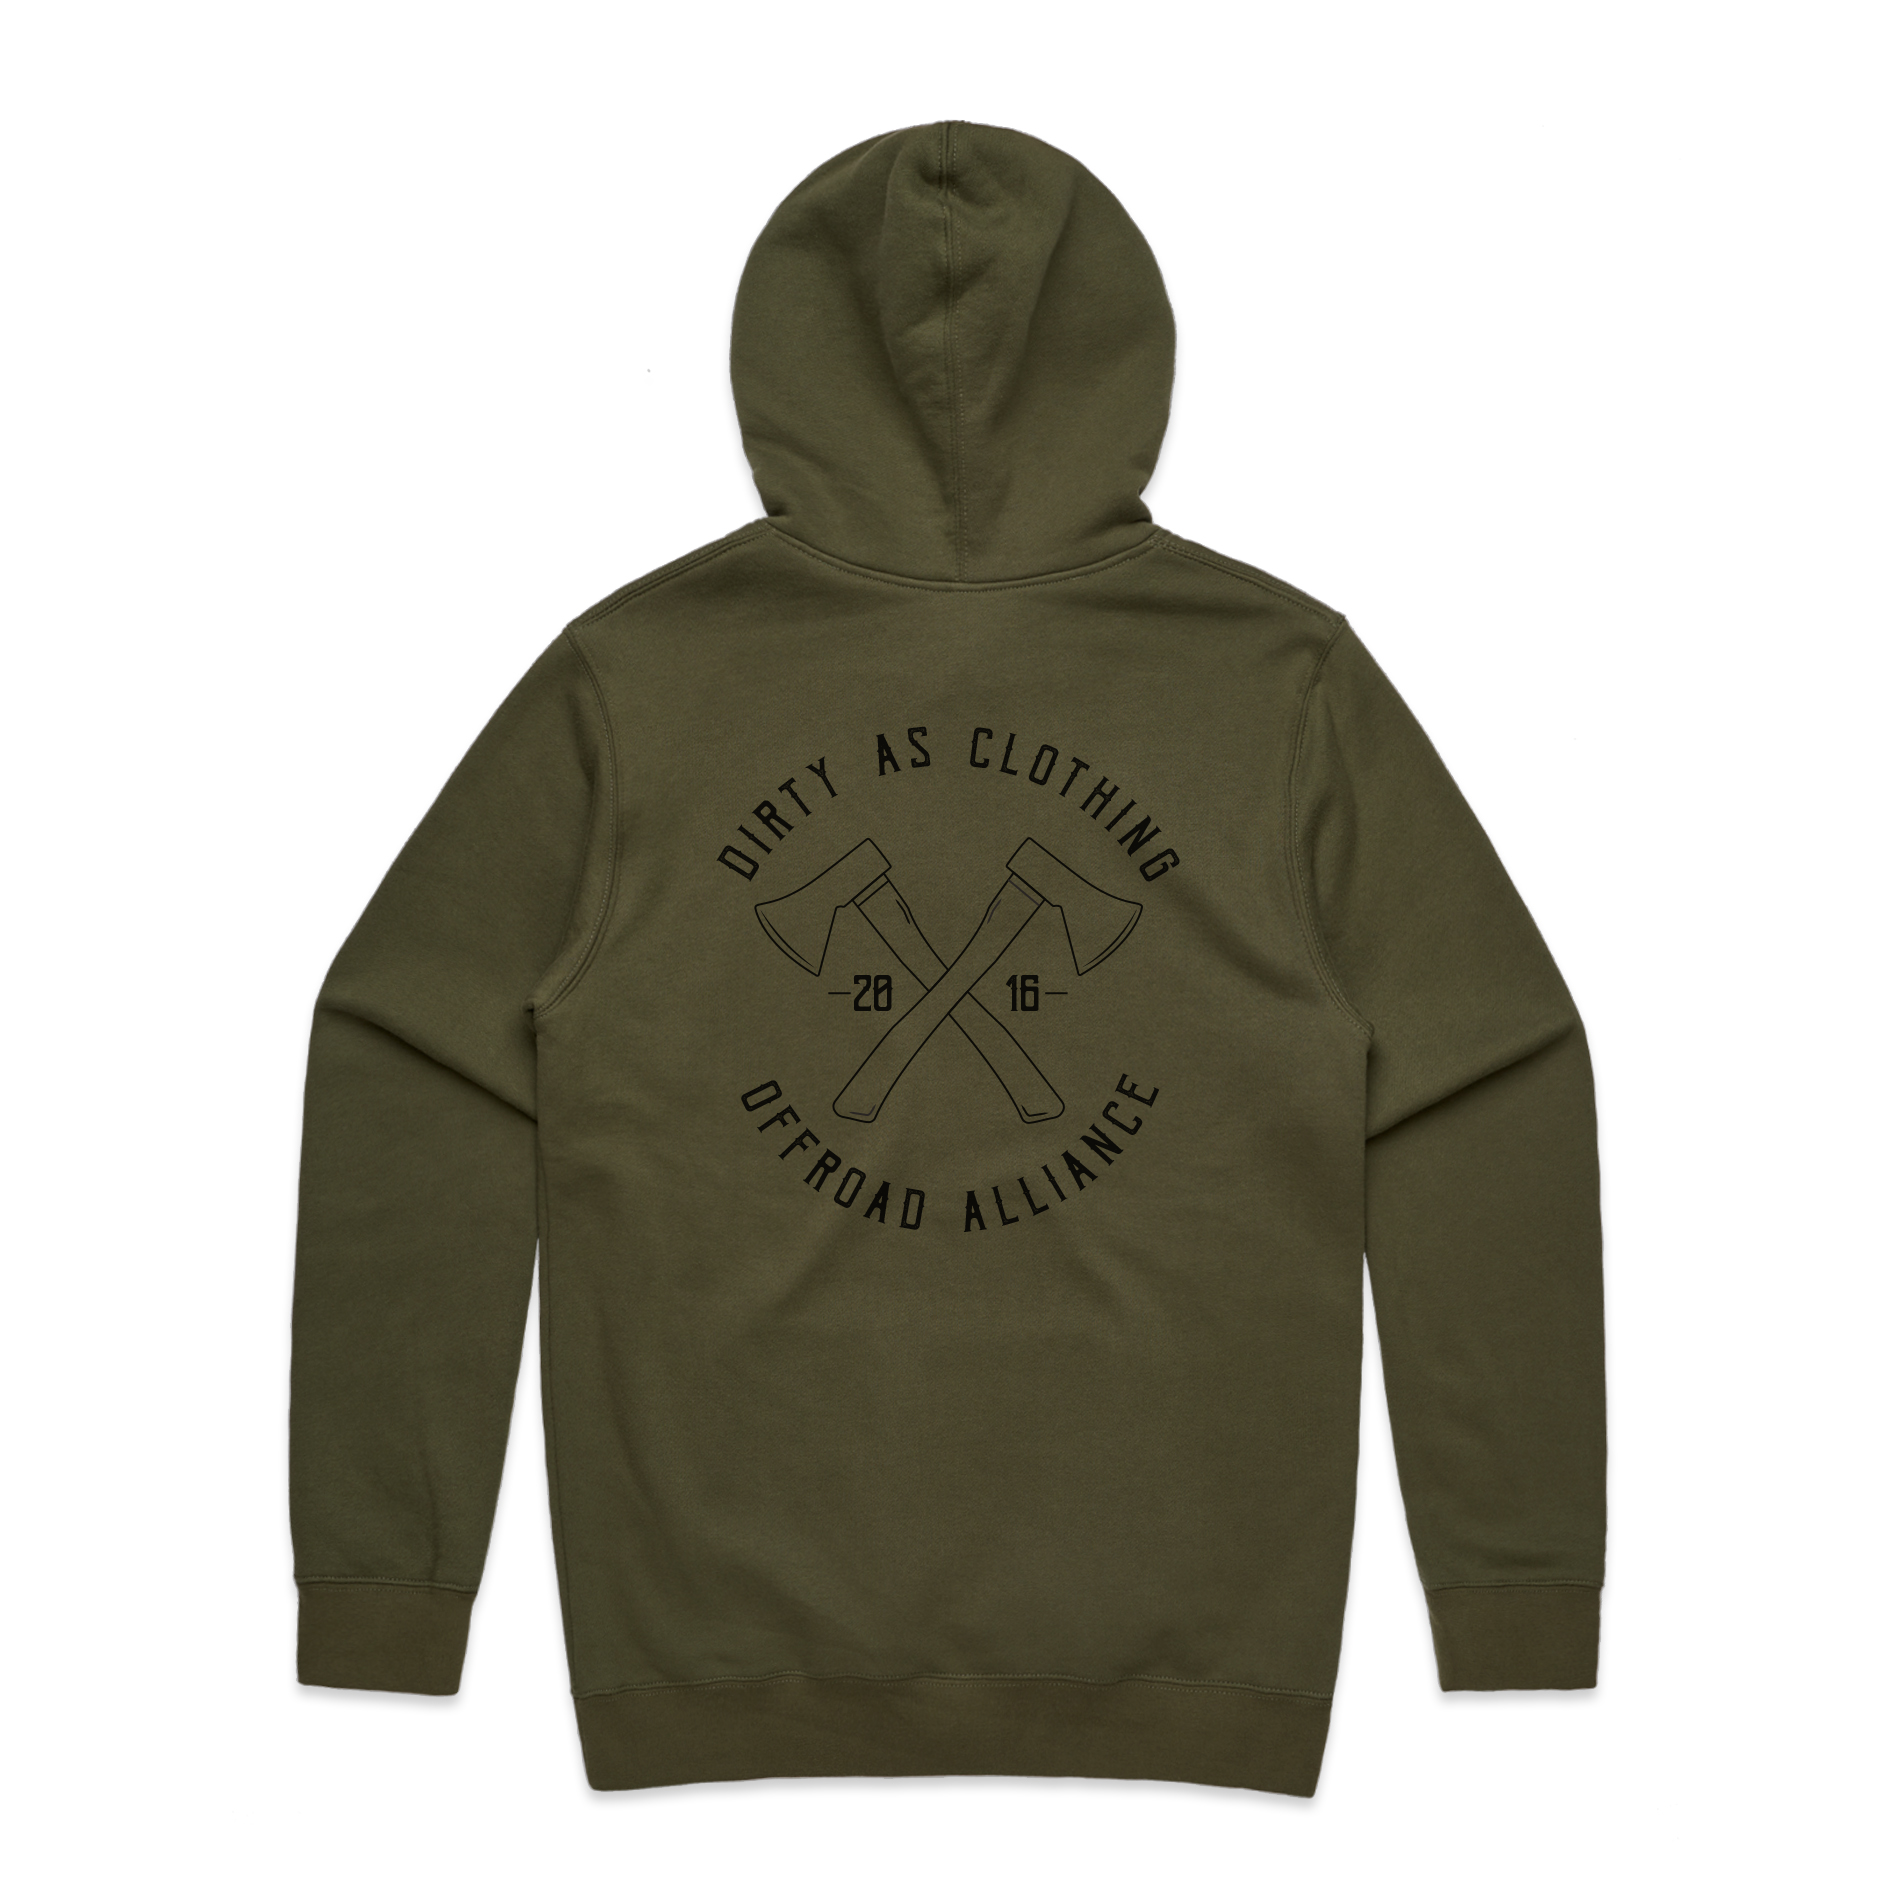 Offroad Alliance Hoodie - Dirty As Clothing